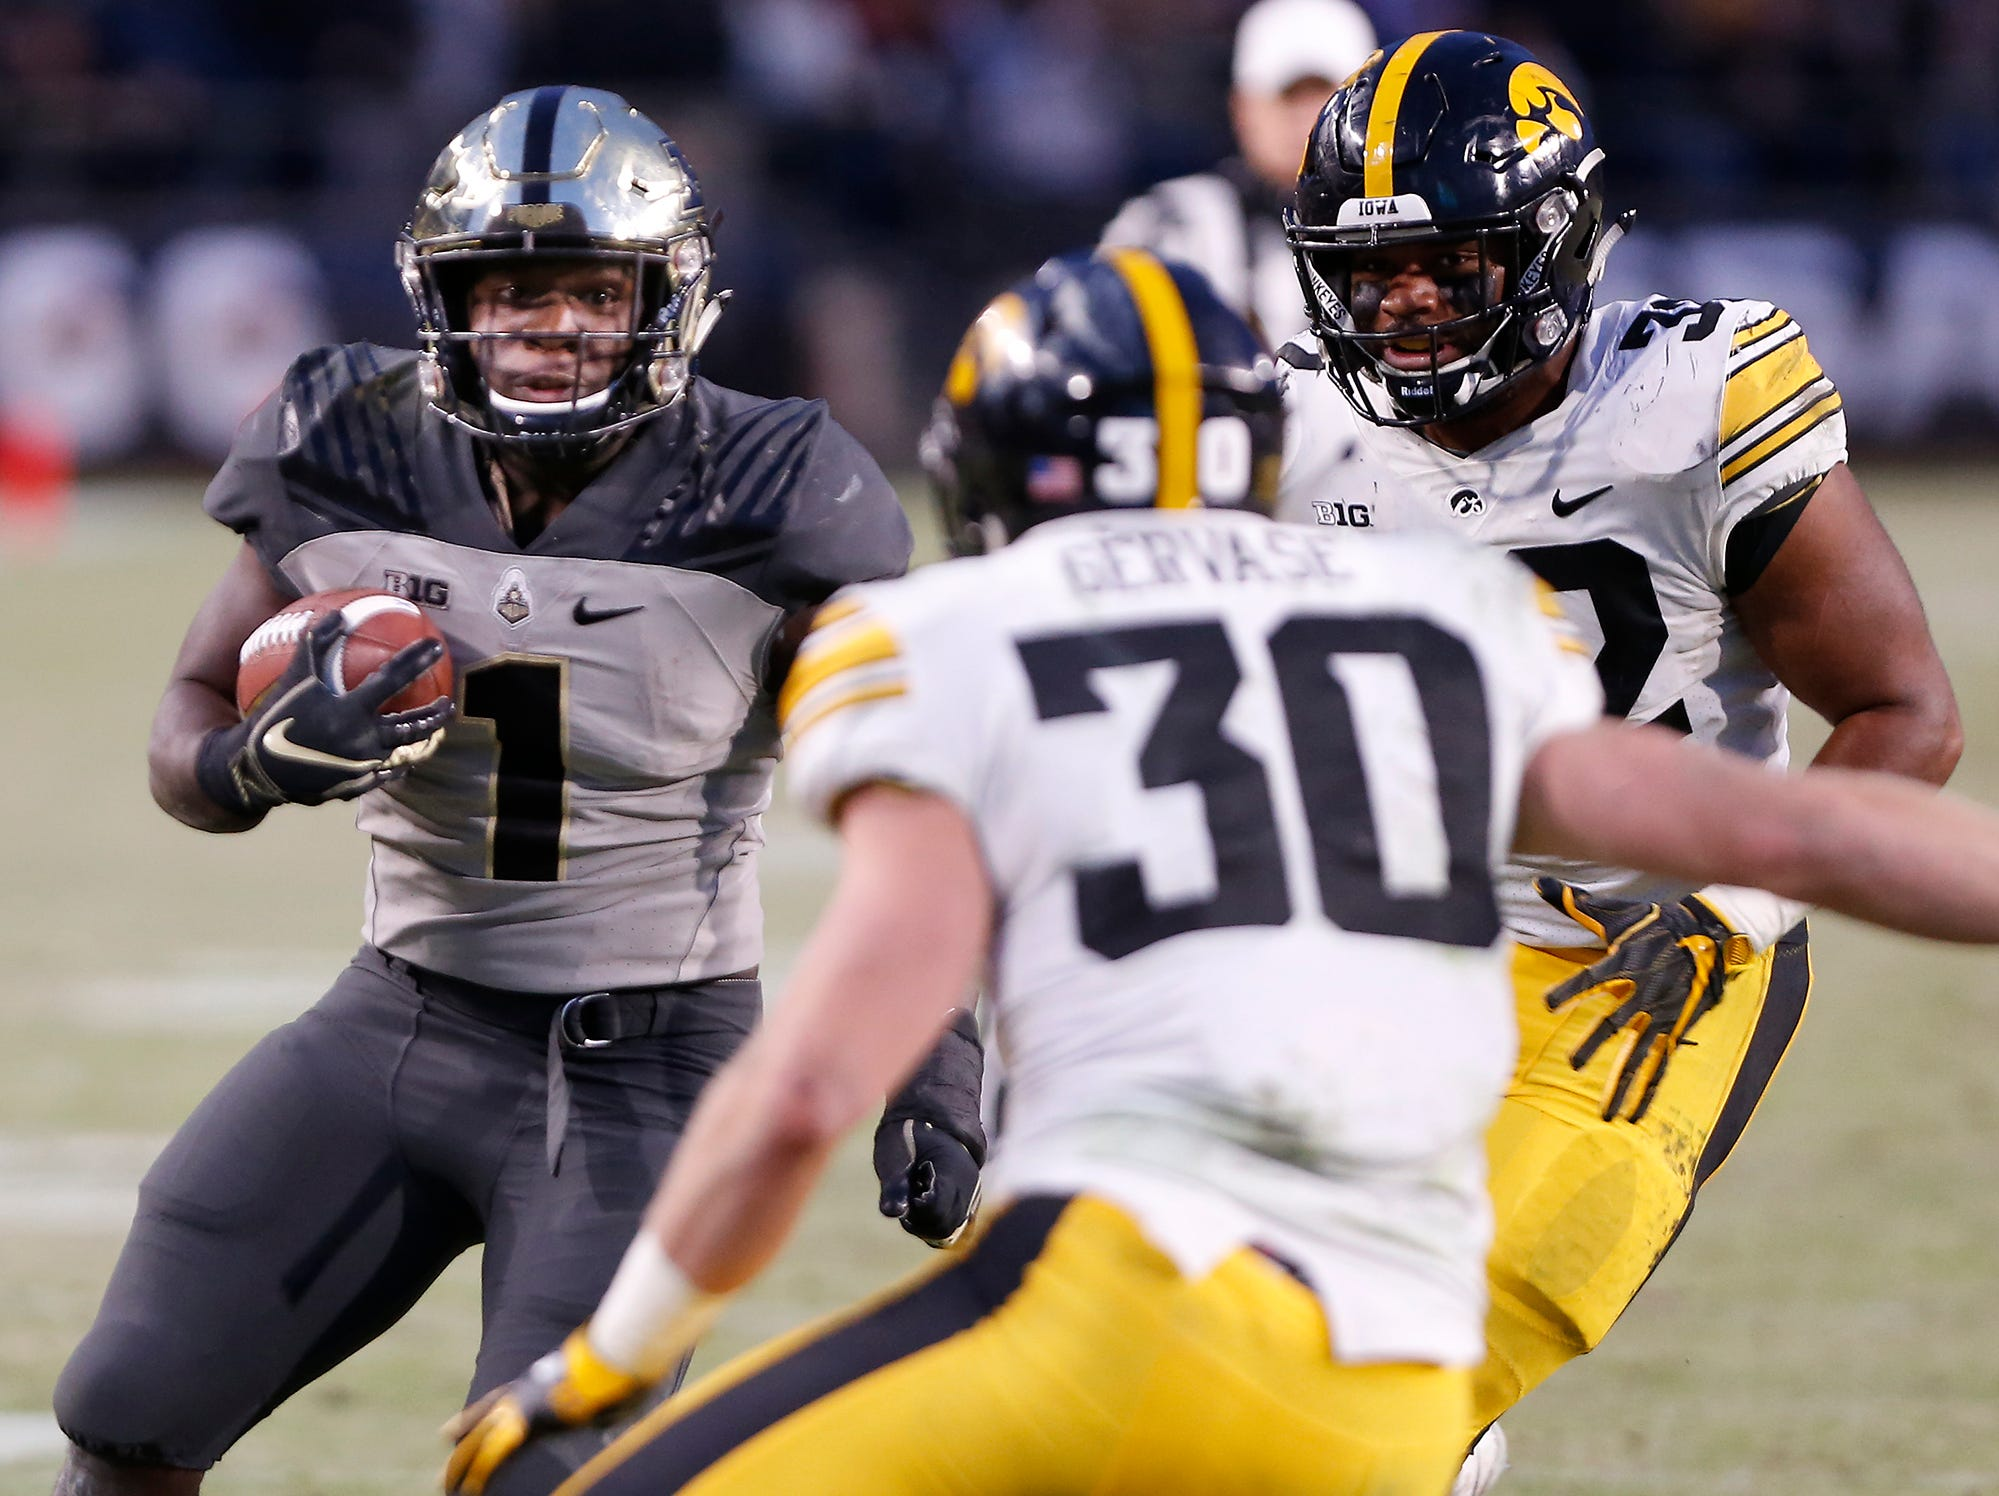 D. J. Knox with a carry for Purdue late in the fourth quarter against Iowa Saturday, November 3, 2018, at Ross-Ade Stadium. Purdue defeated Iowa 38-36.